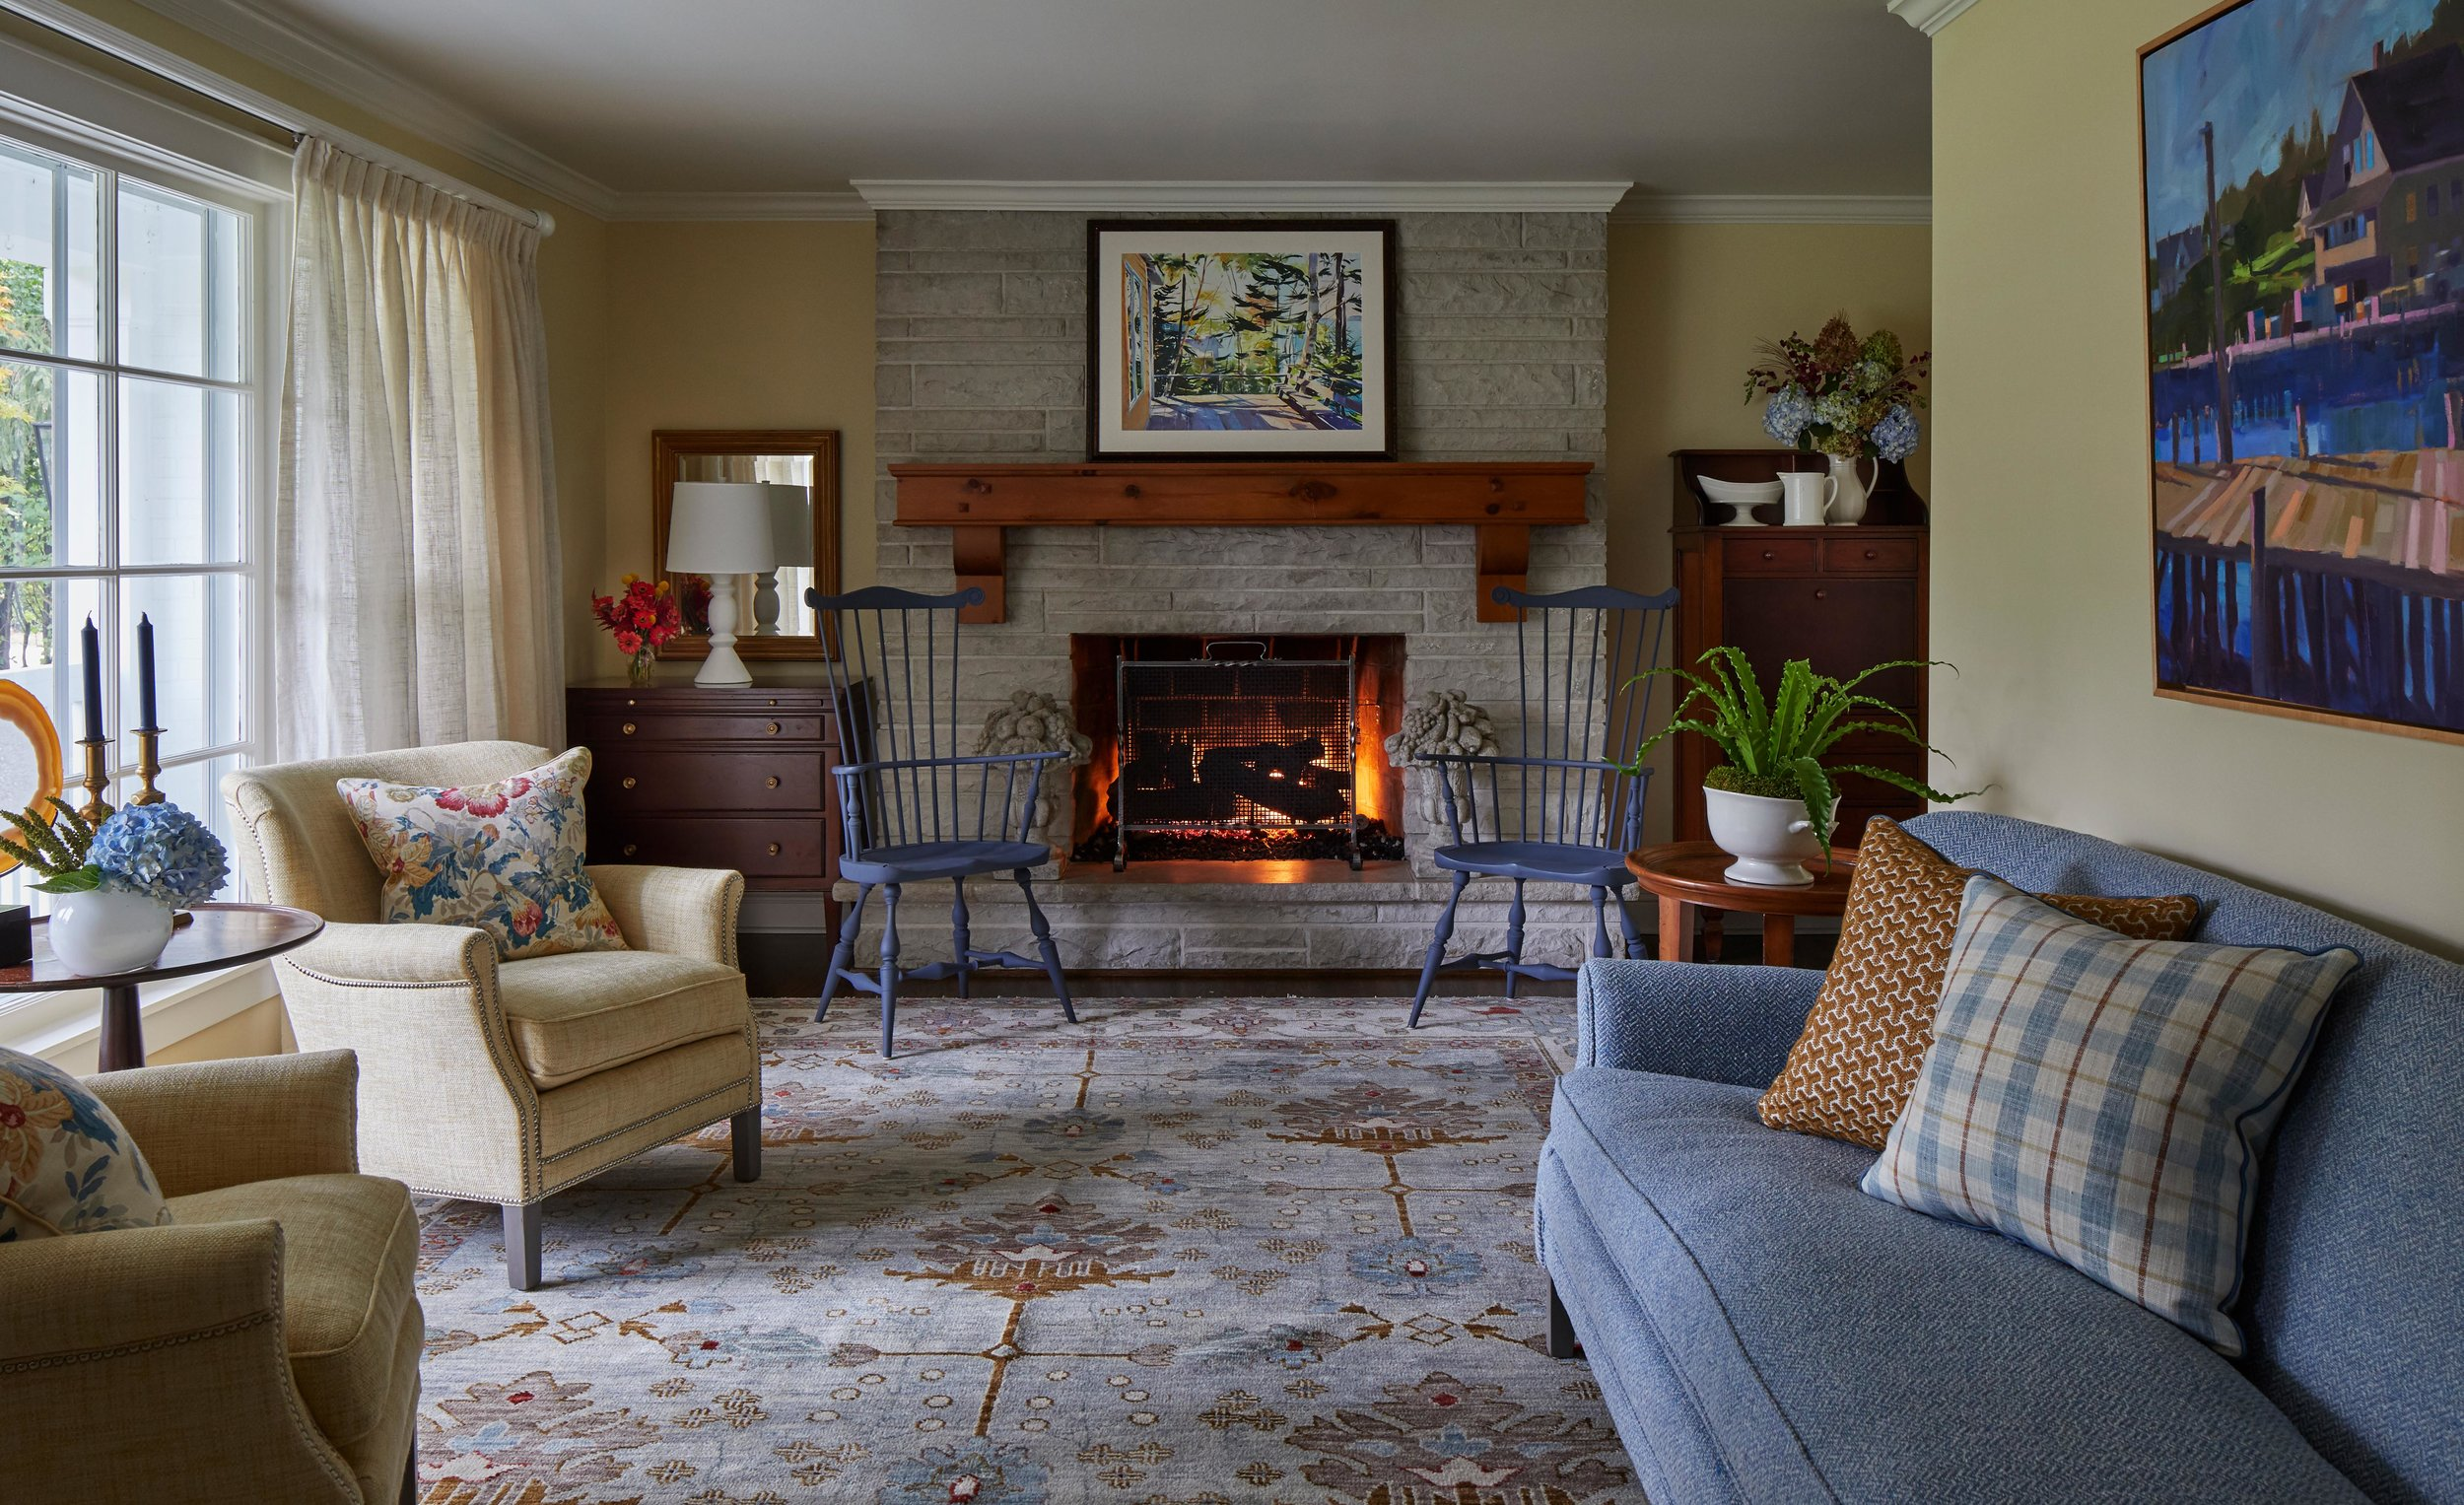 Classic living room with cozy fireplace and blue accents. Come see more interior design inspiration from Elizabeth Drake. Photo by Werner Straube. #interiordesign #classicdesign #traditionaldecor #housetour #elizabethdrake